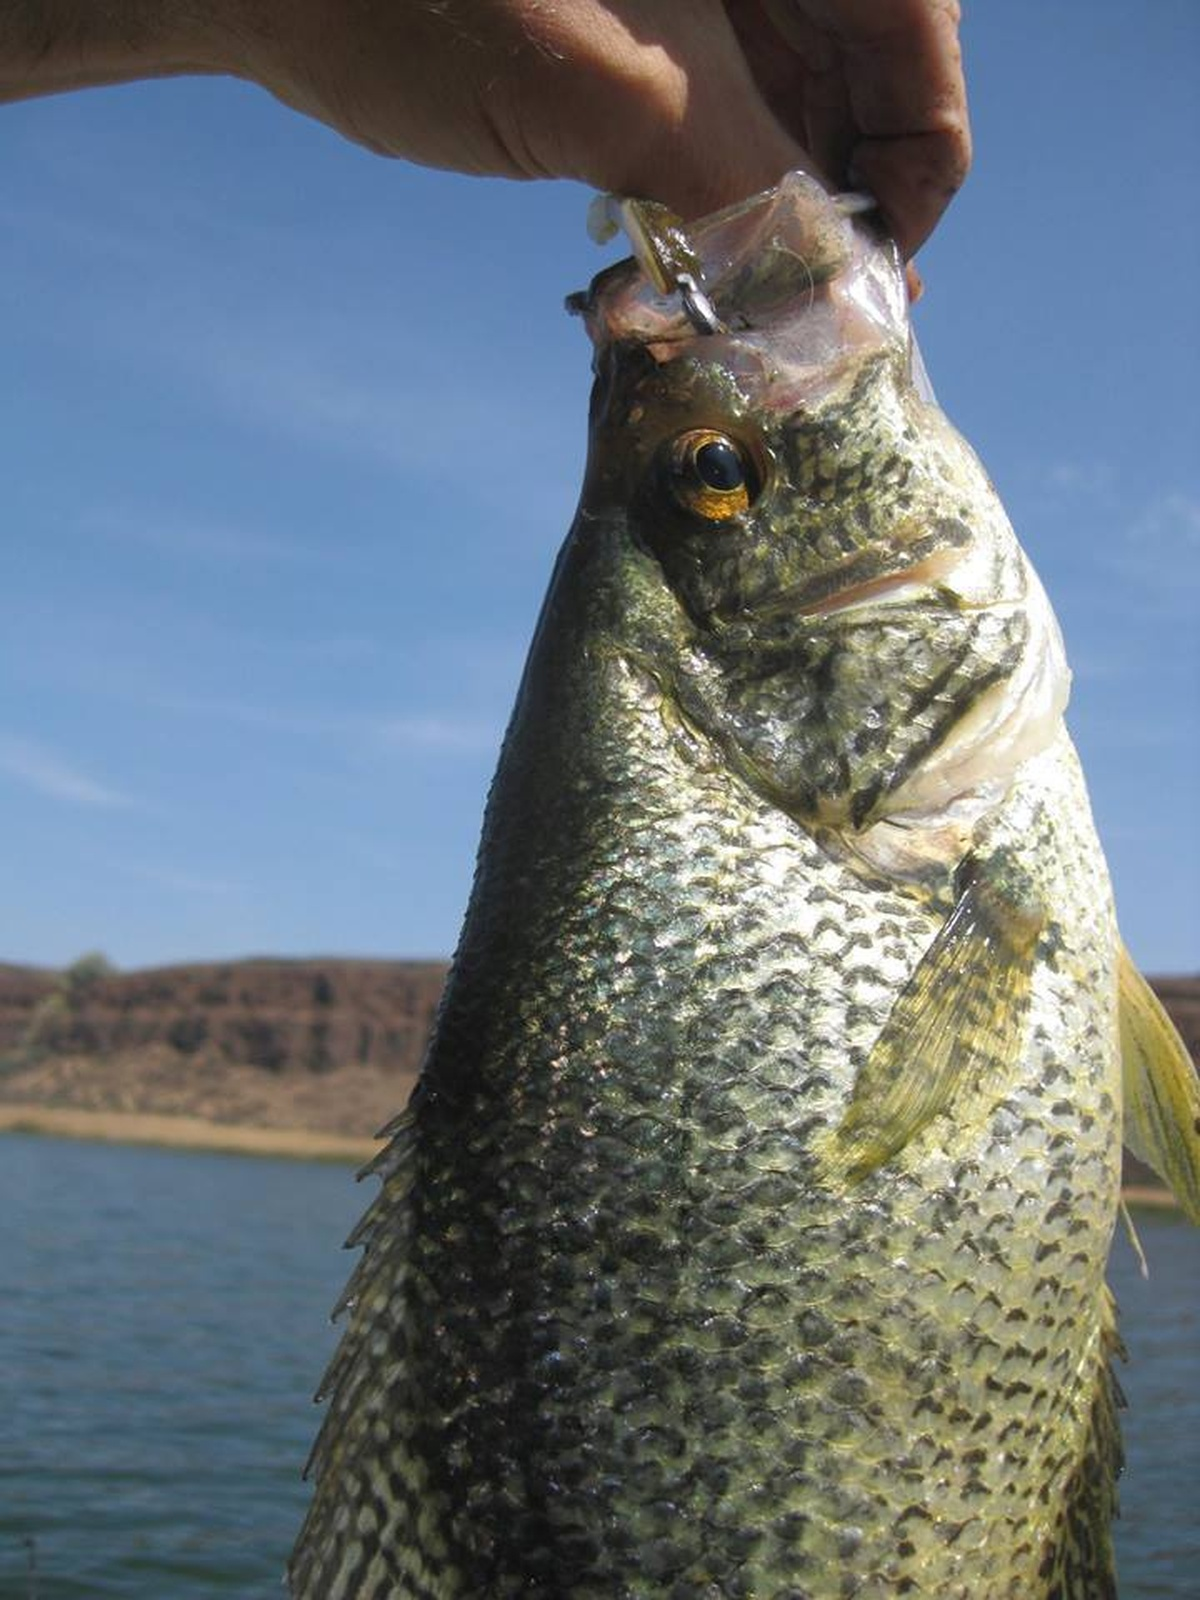 Brian's Weekly Minnesota Fishing Report | The Mighty 790 KFGO